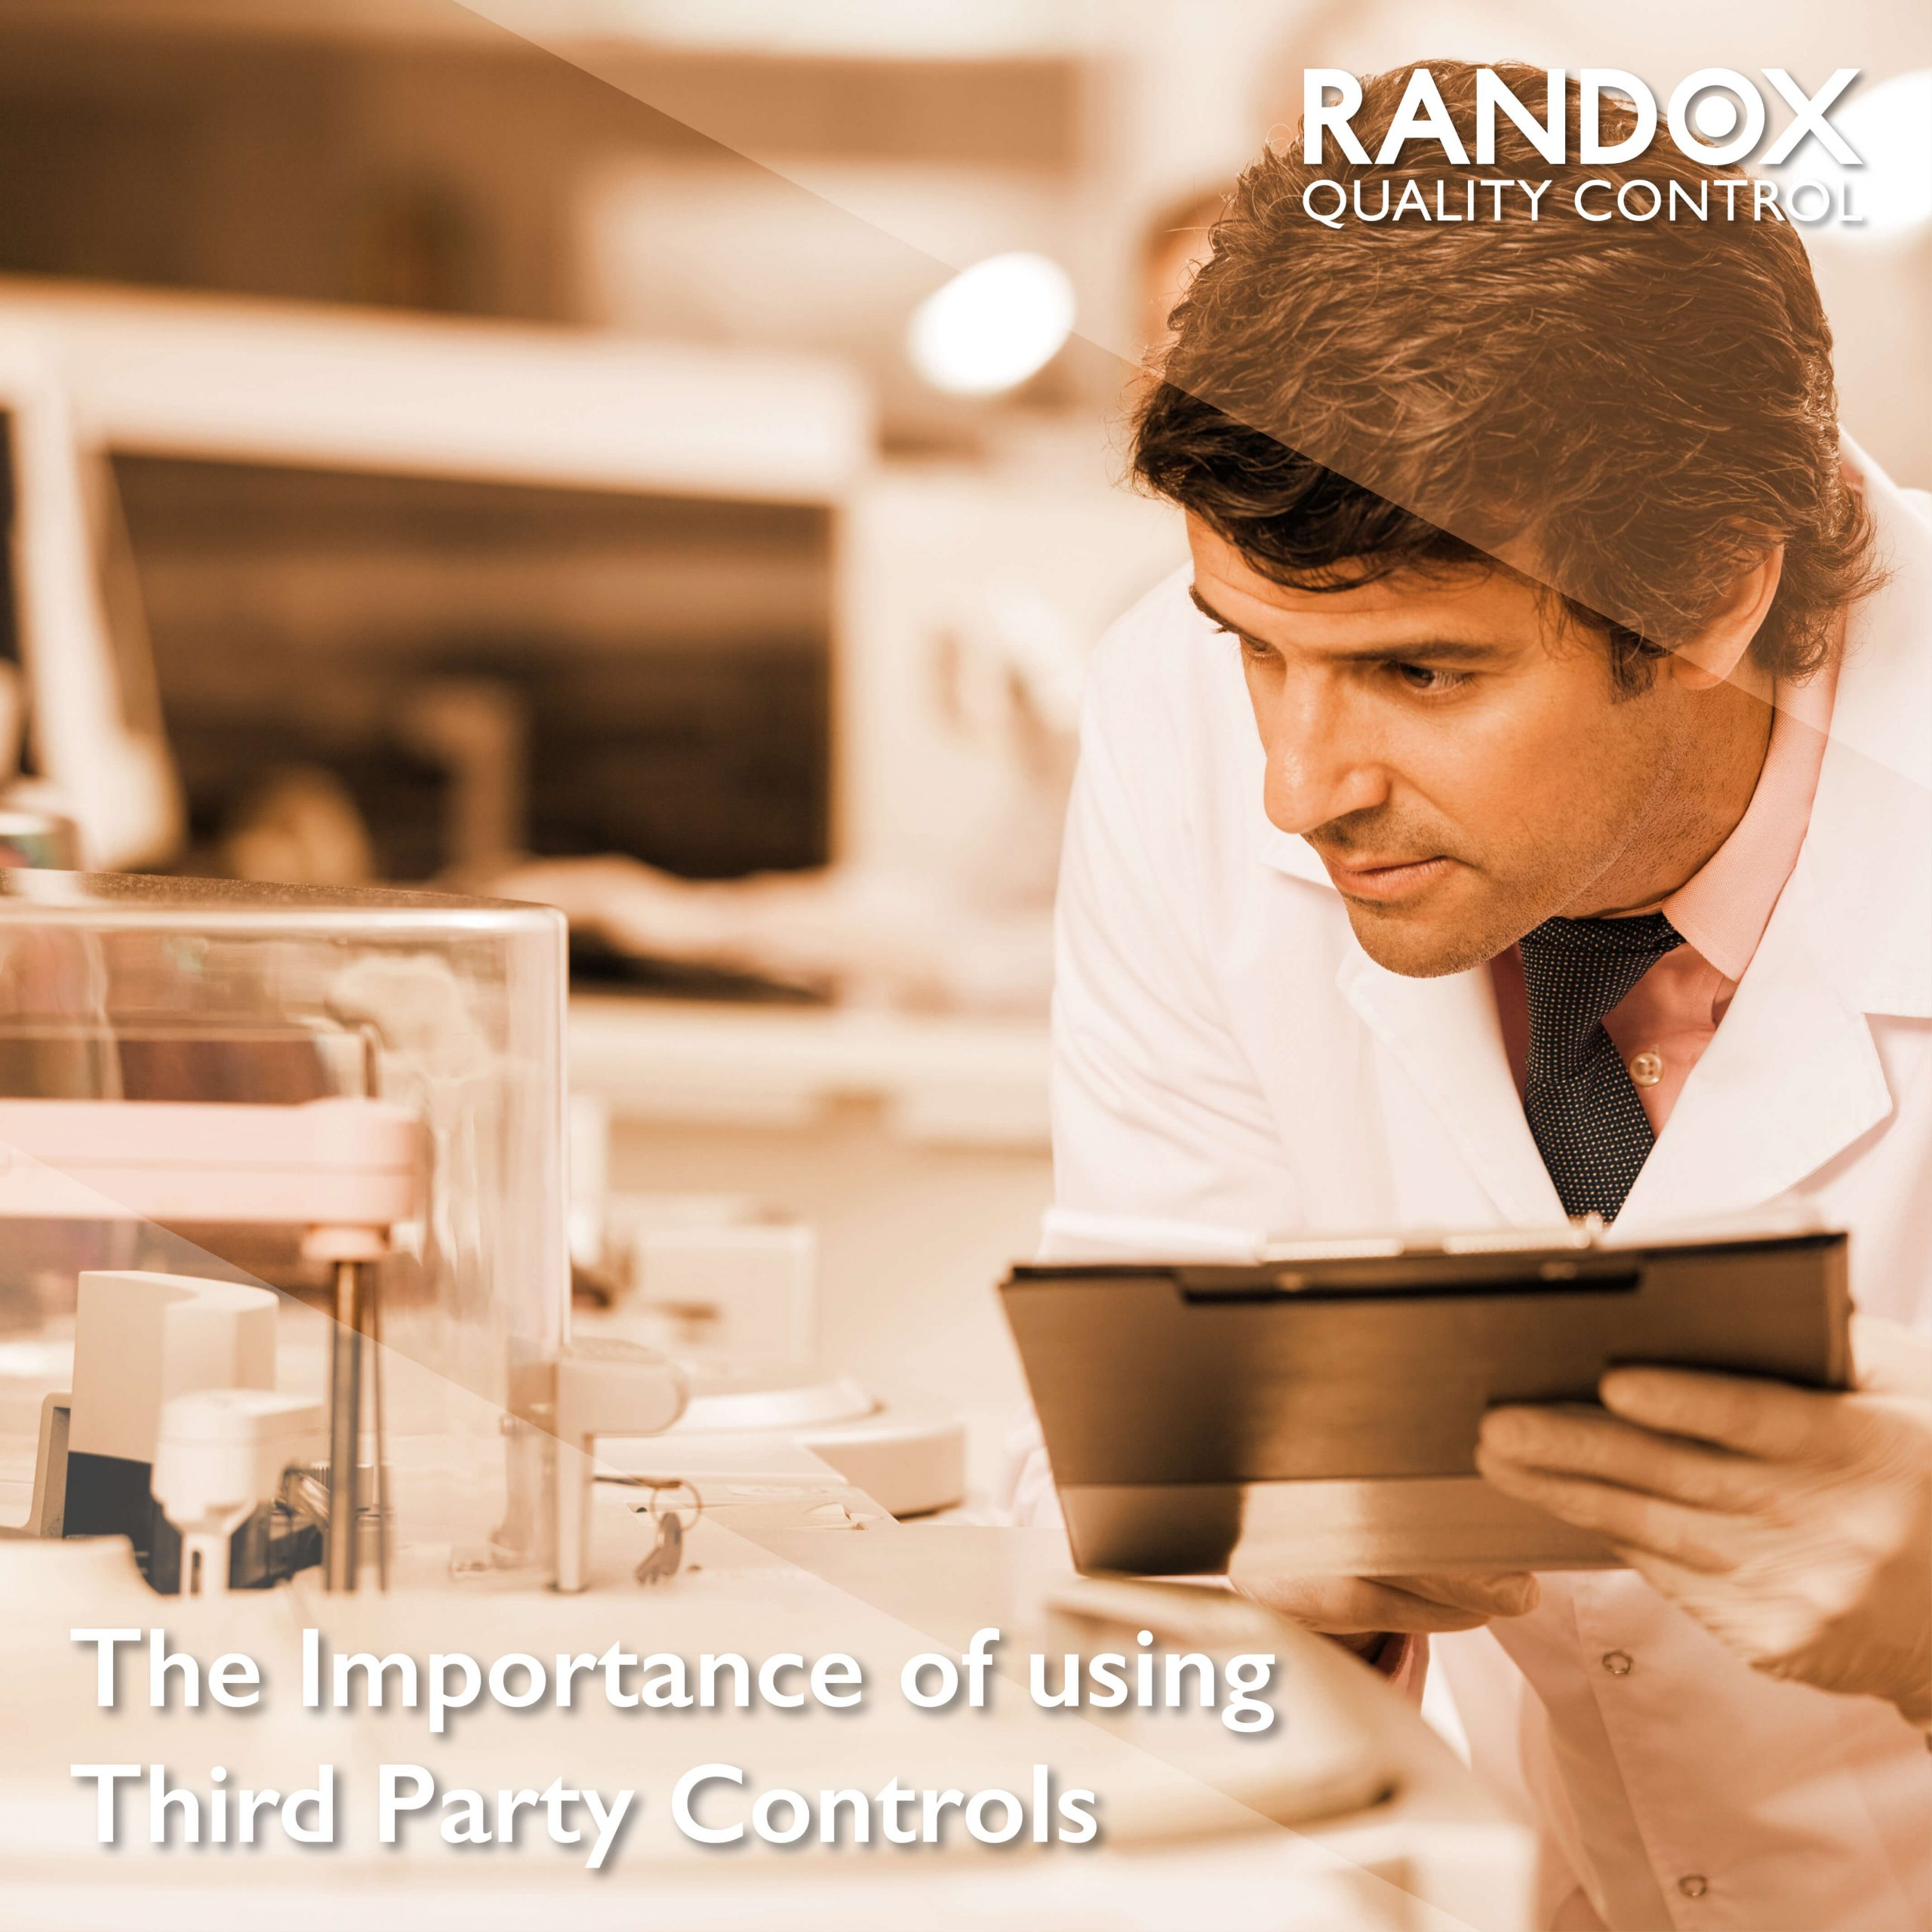 Importance of third party controls